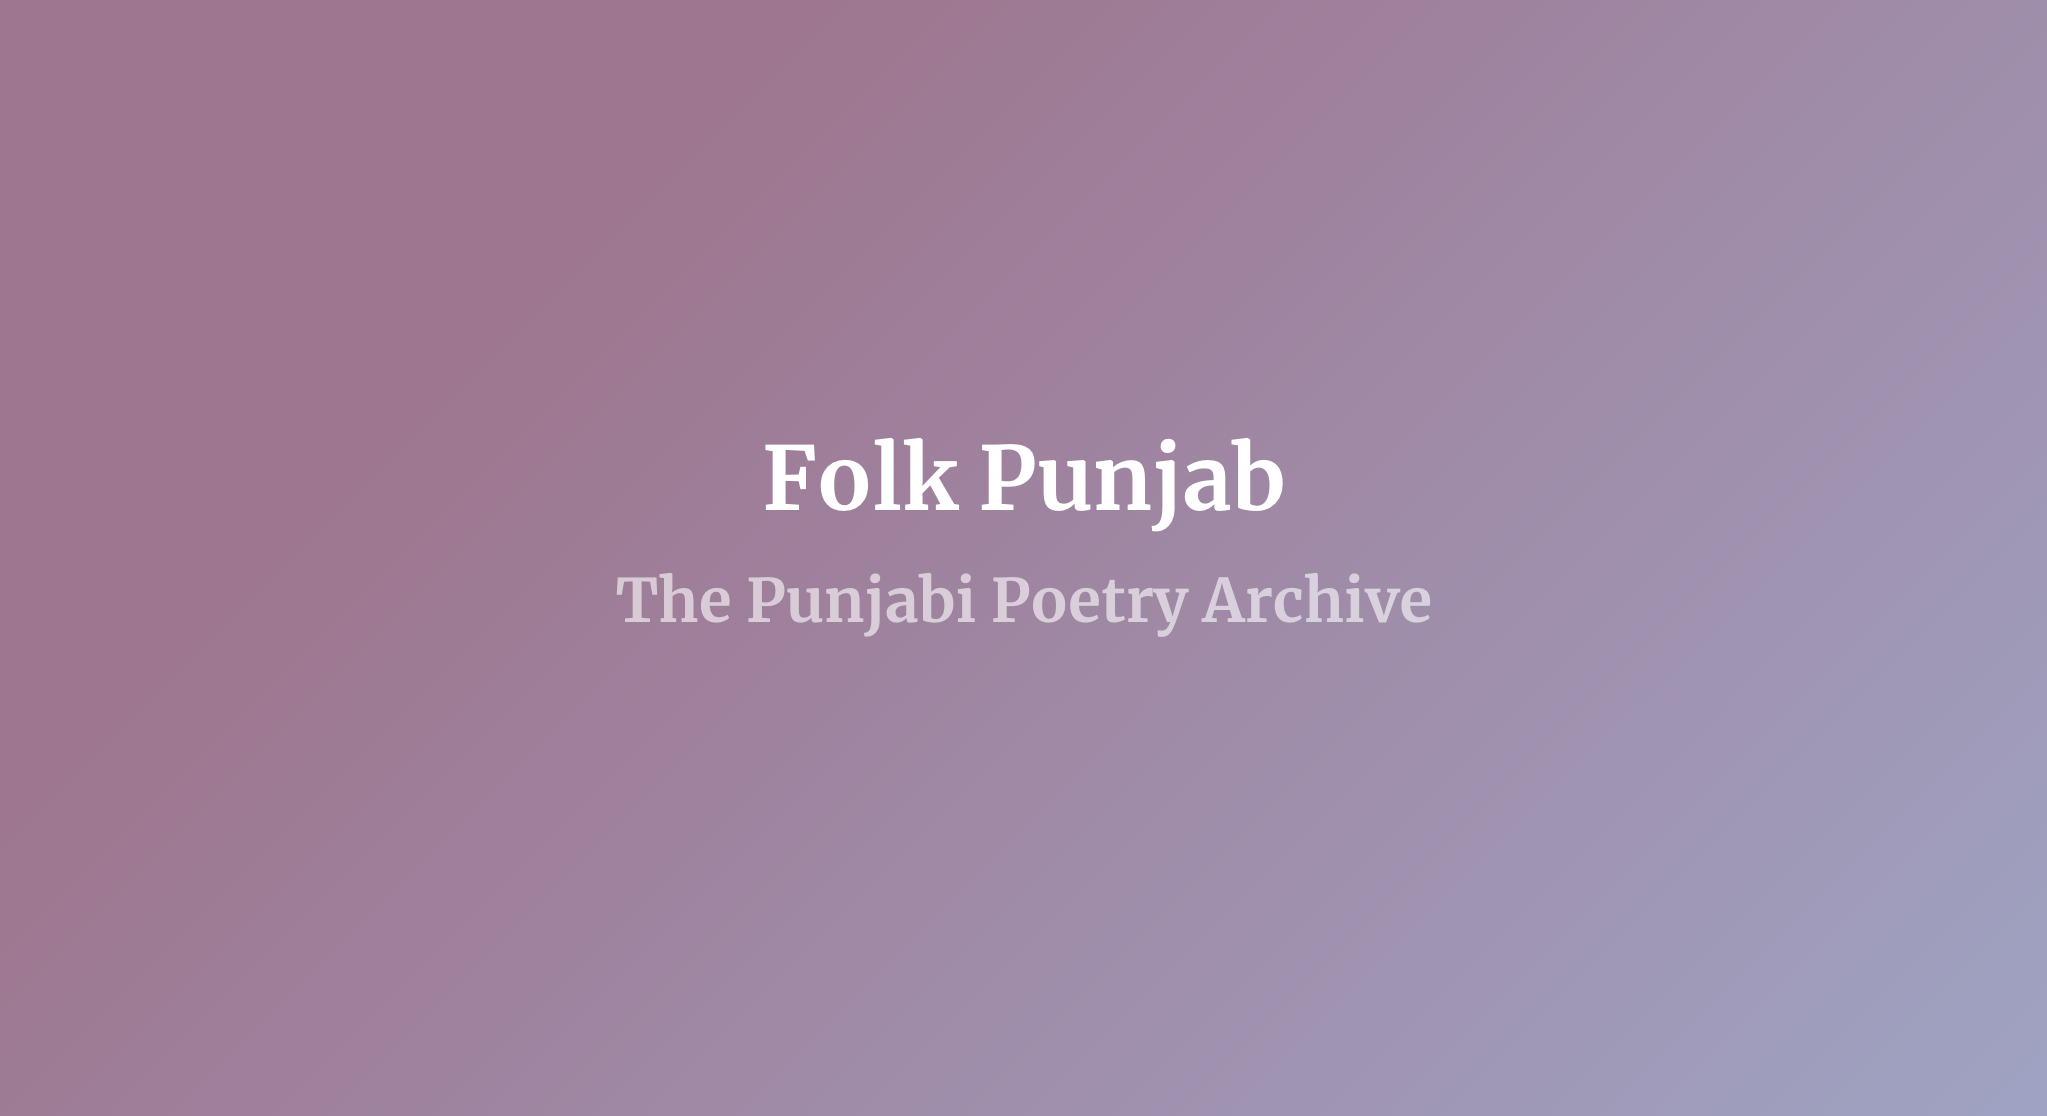 Folk Punjab | The Punjabi Poetry Archive